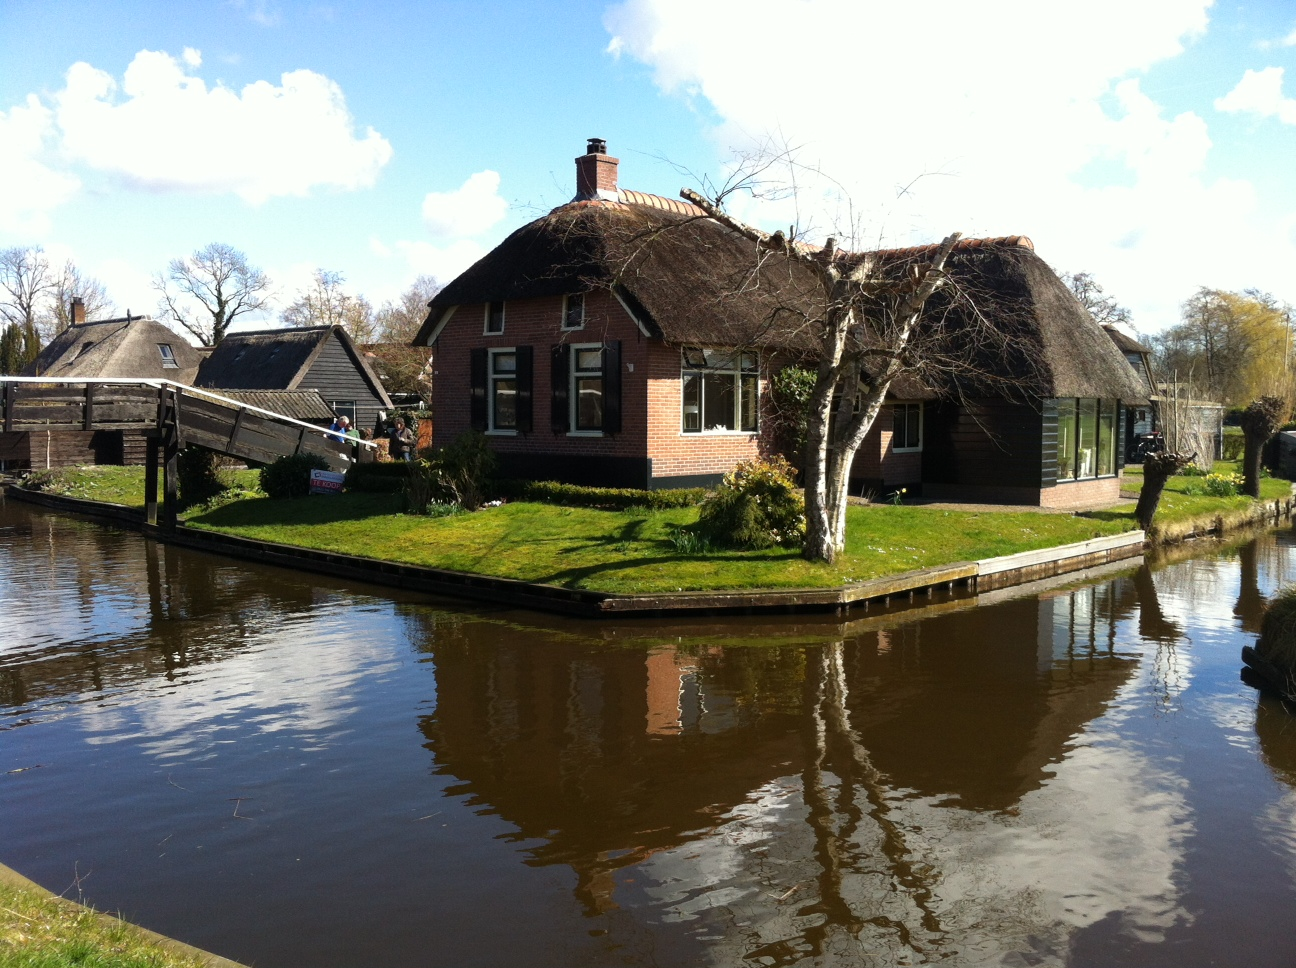 Book a tour to Giethoorn from Amsterdam